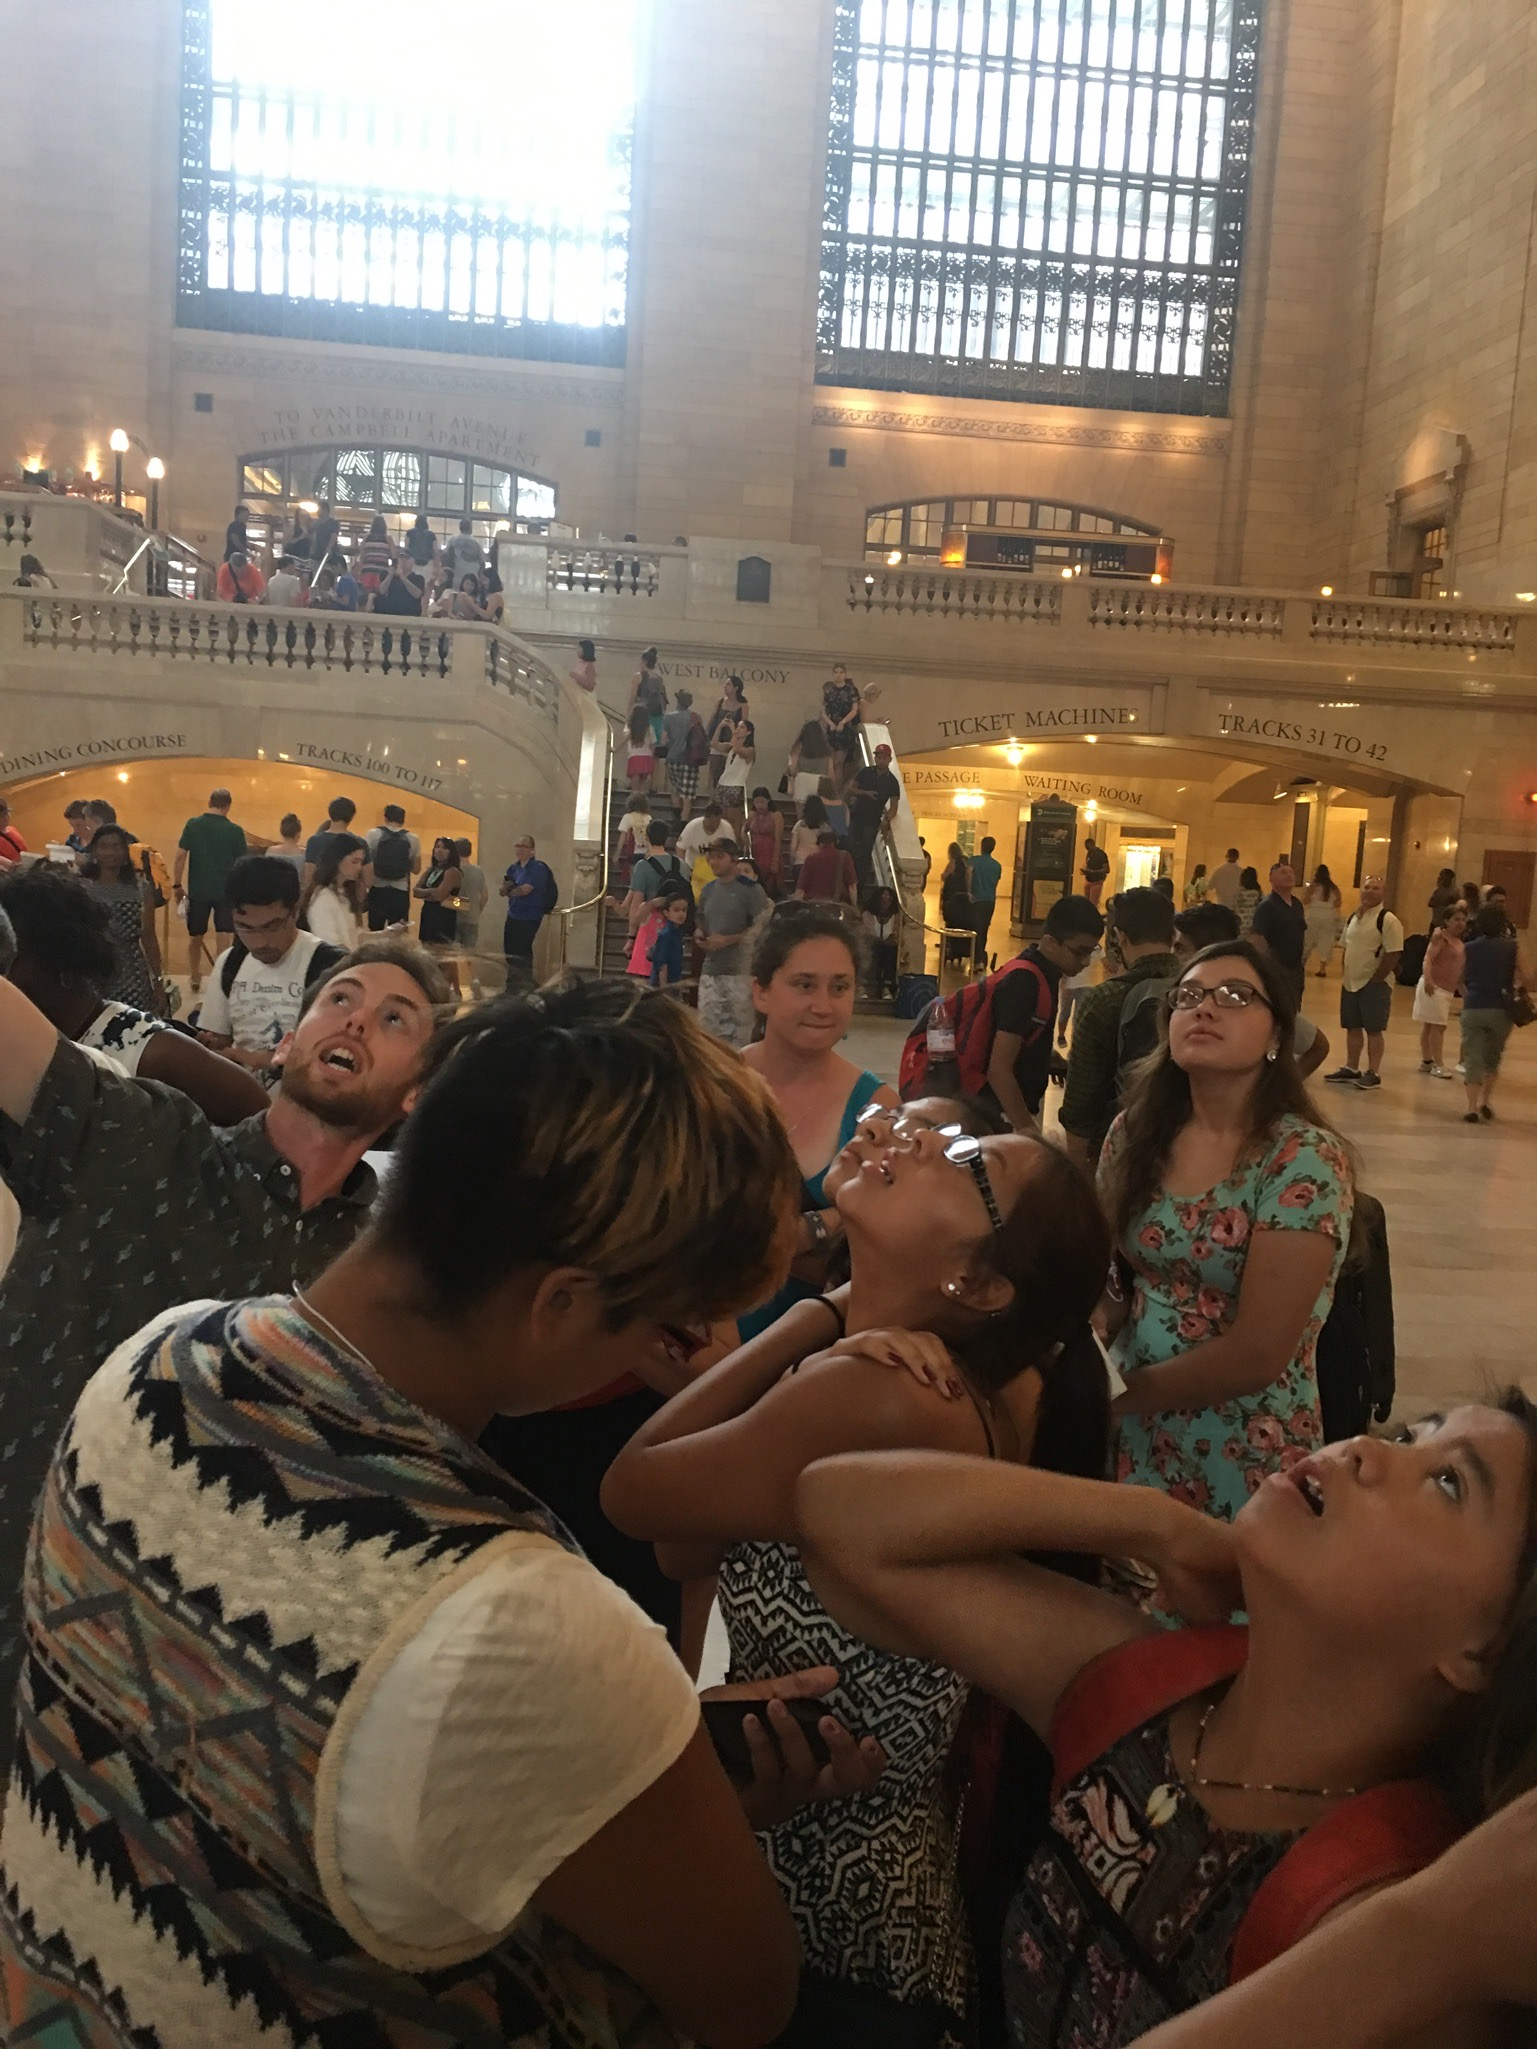 Arrival at Grand Central Terminal.